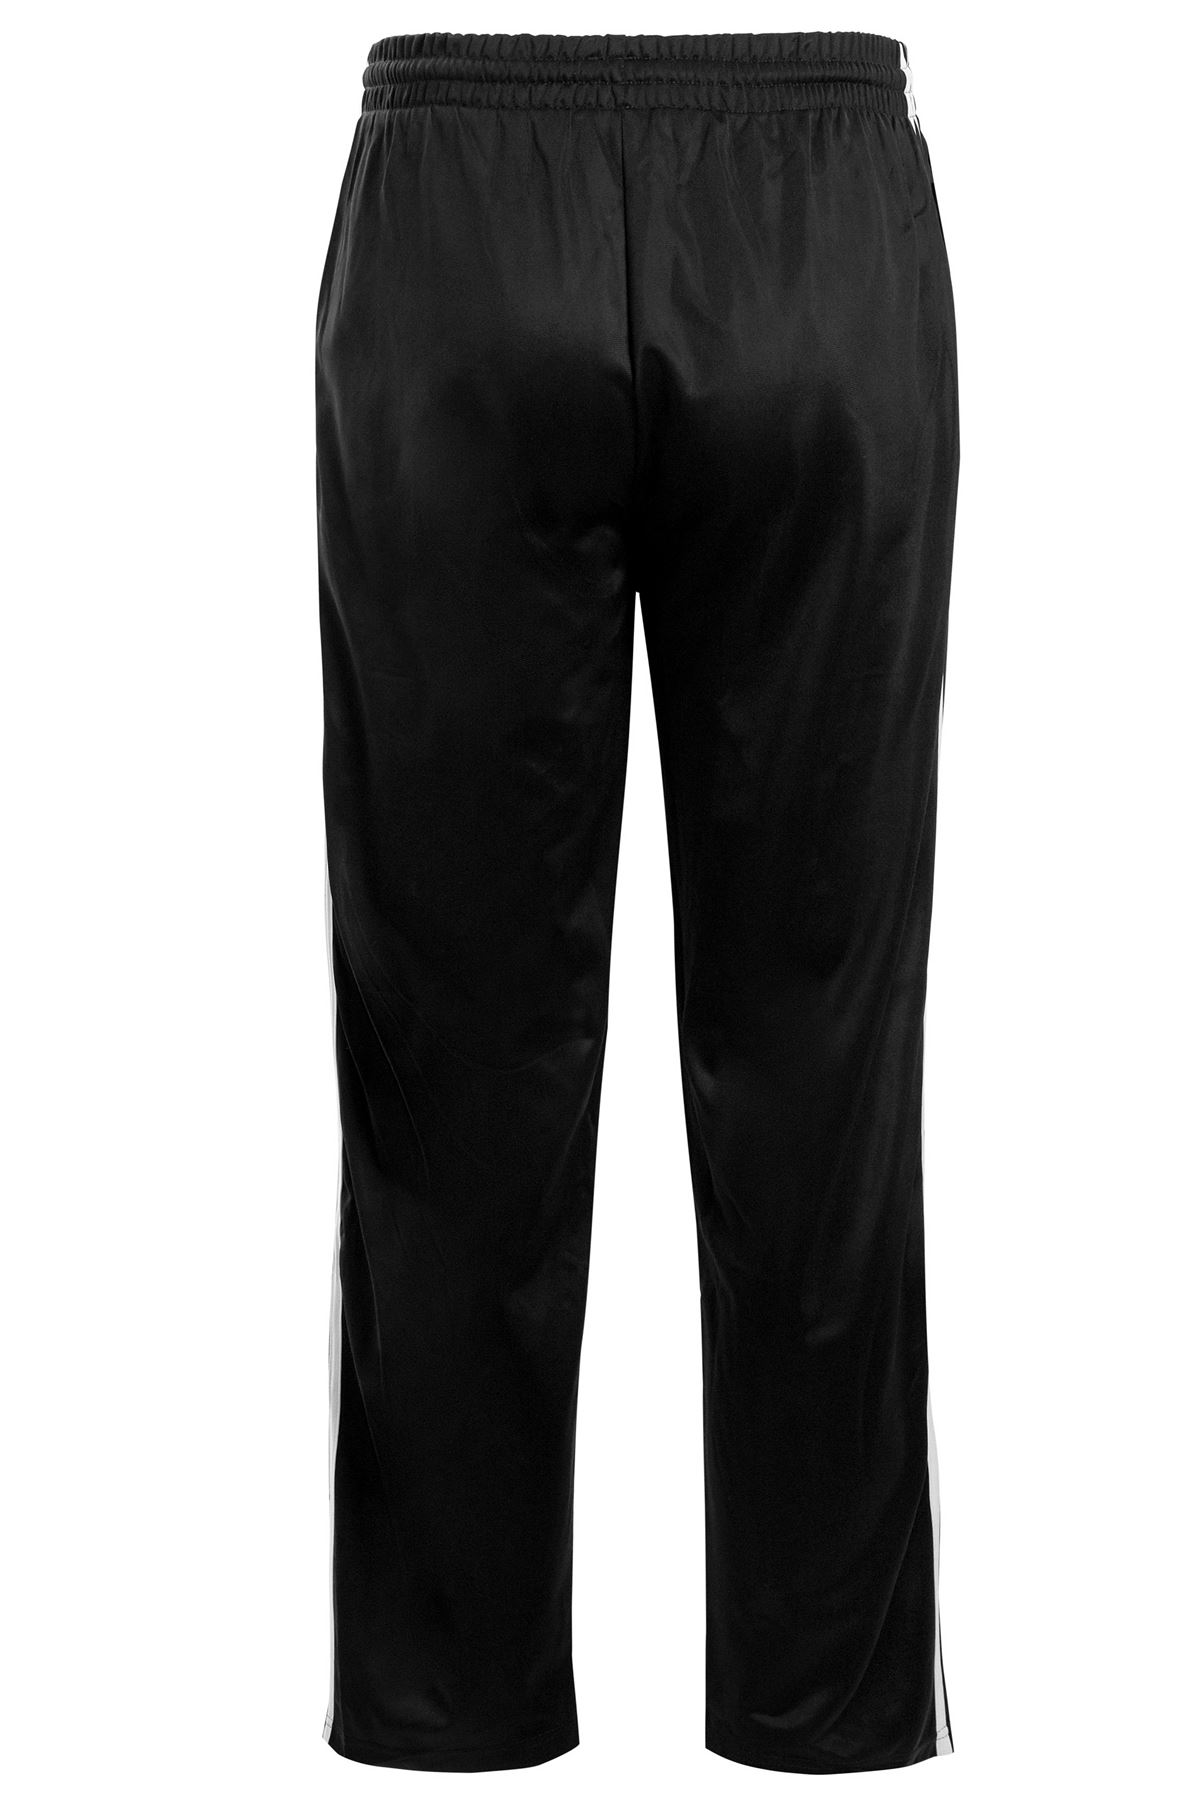 Mens-Tracksuit-Joggers-Jogging-Striped-Gym-Sports-Silky-Bottoms-Trousers-Pants thumbnail 11